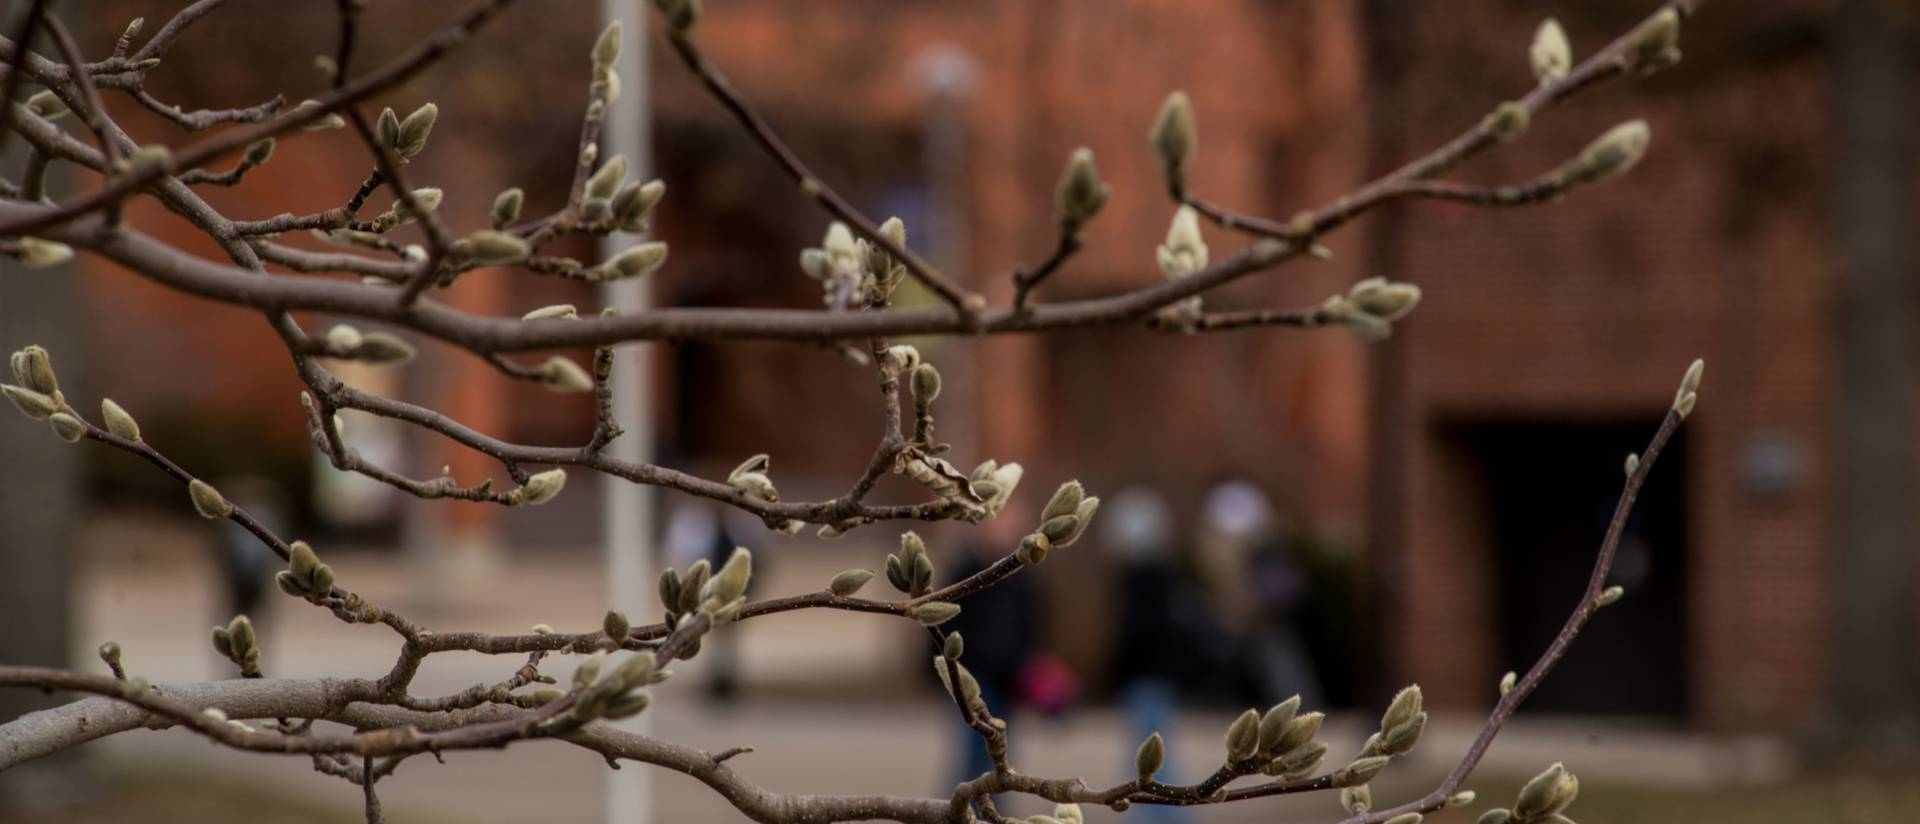 campus scene through budding tree branches